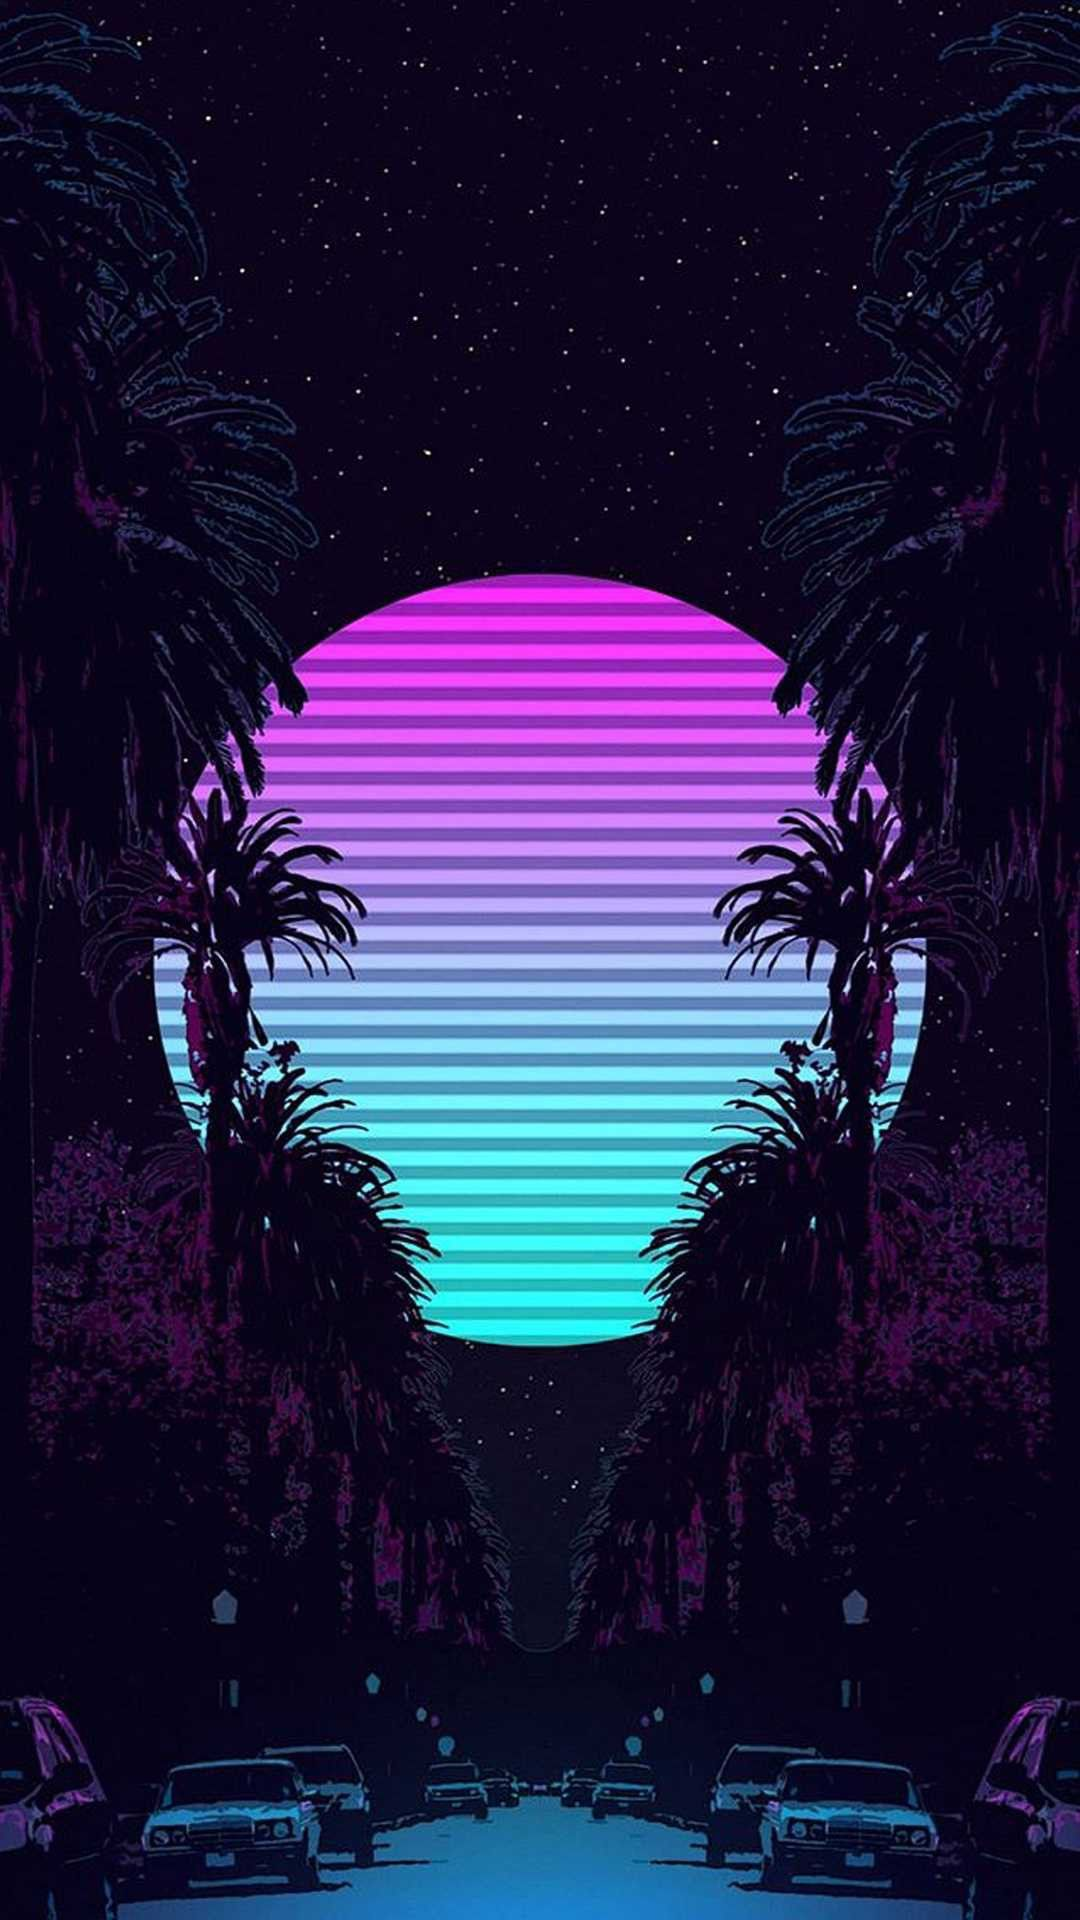 Pin by ADAM MASRI on Neon backgrounds in 2020 | Vaporwave ...